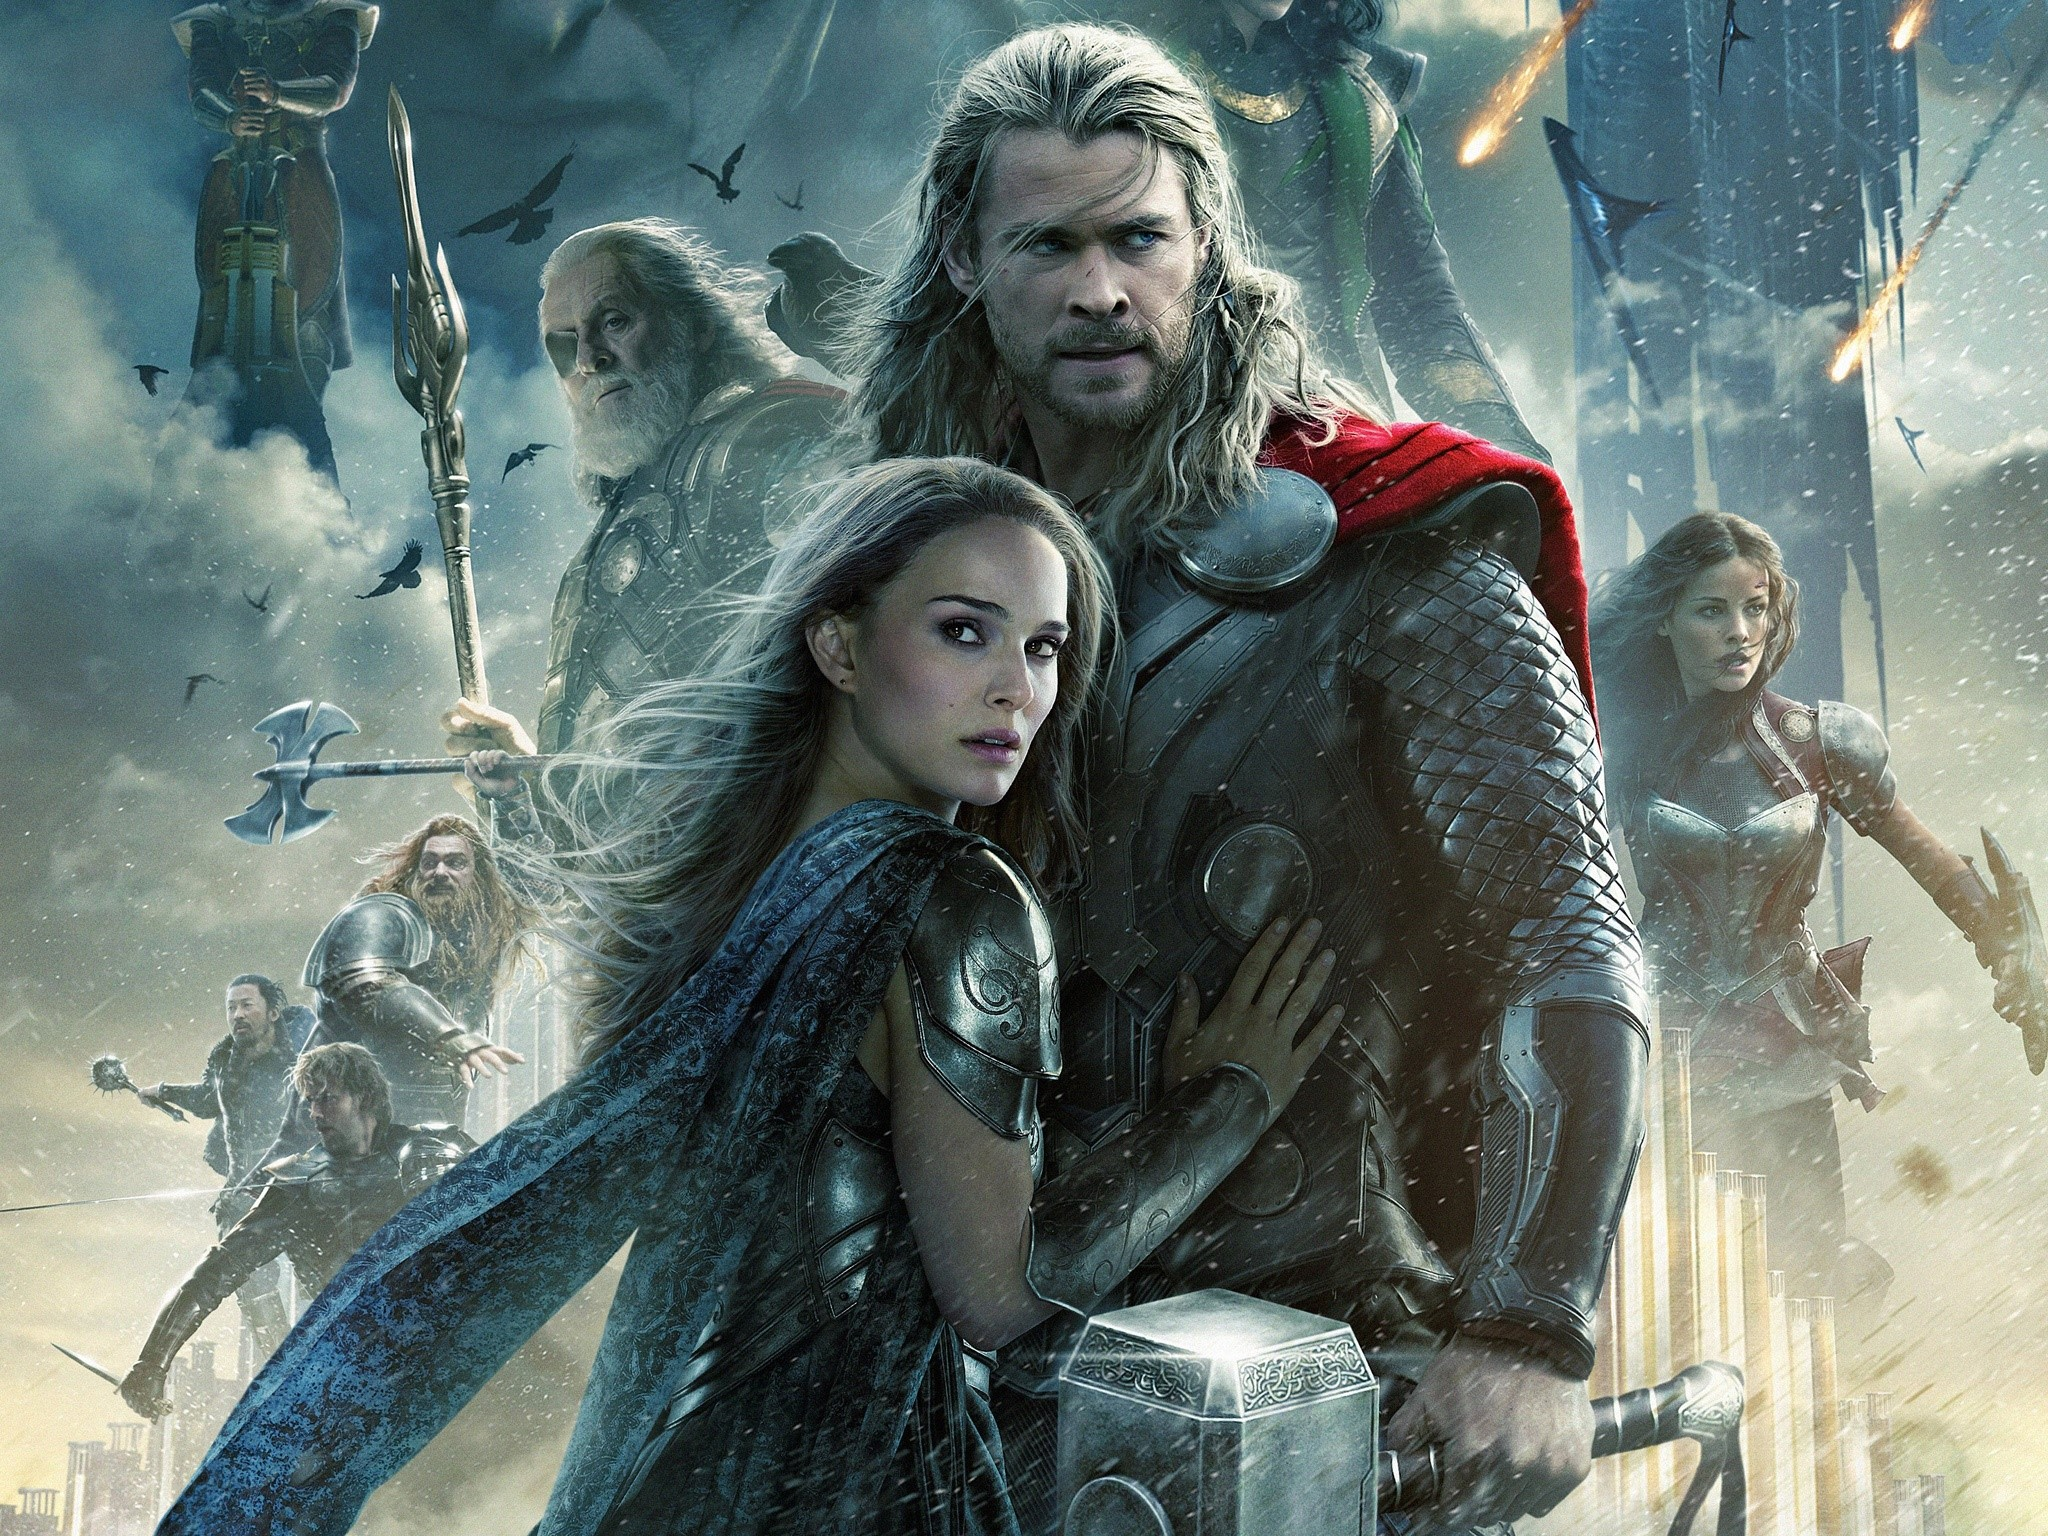 Wallpaper Thor y Jane en El mundo oscuro Images